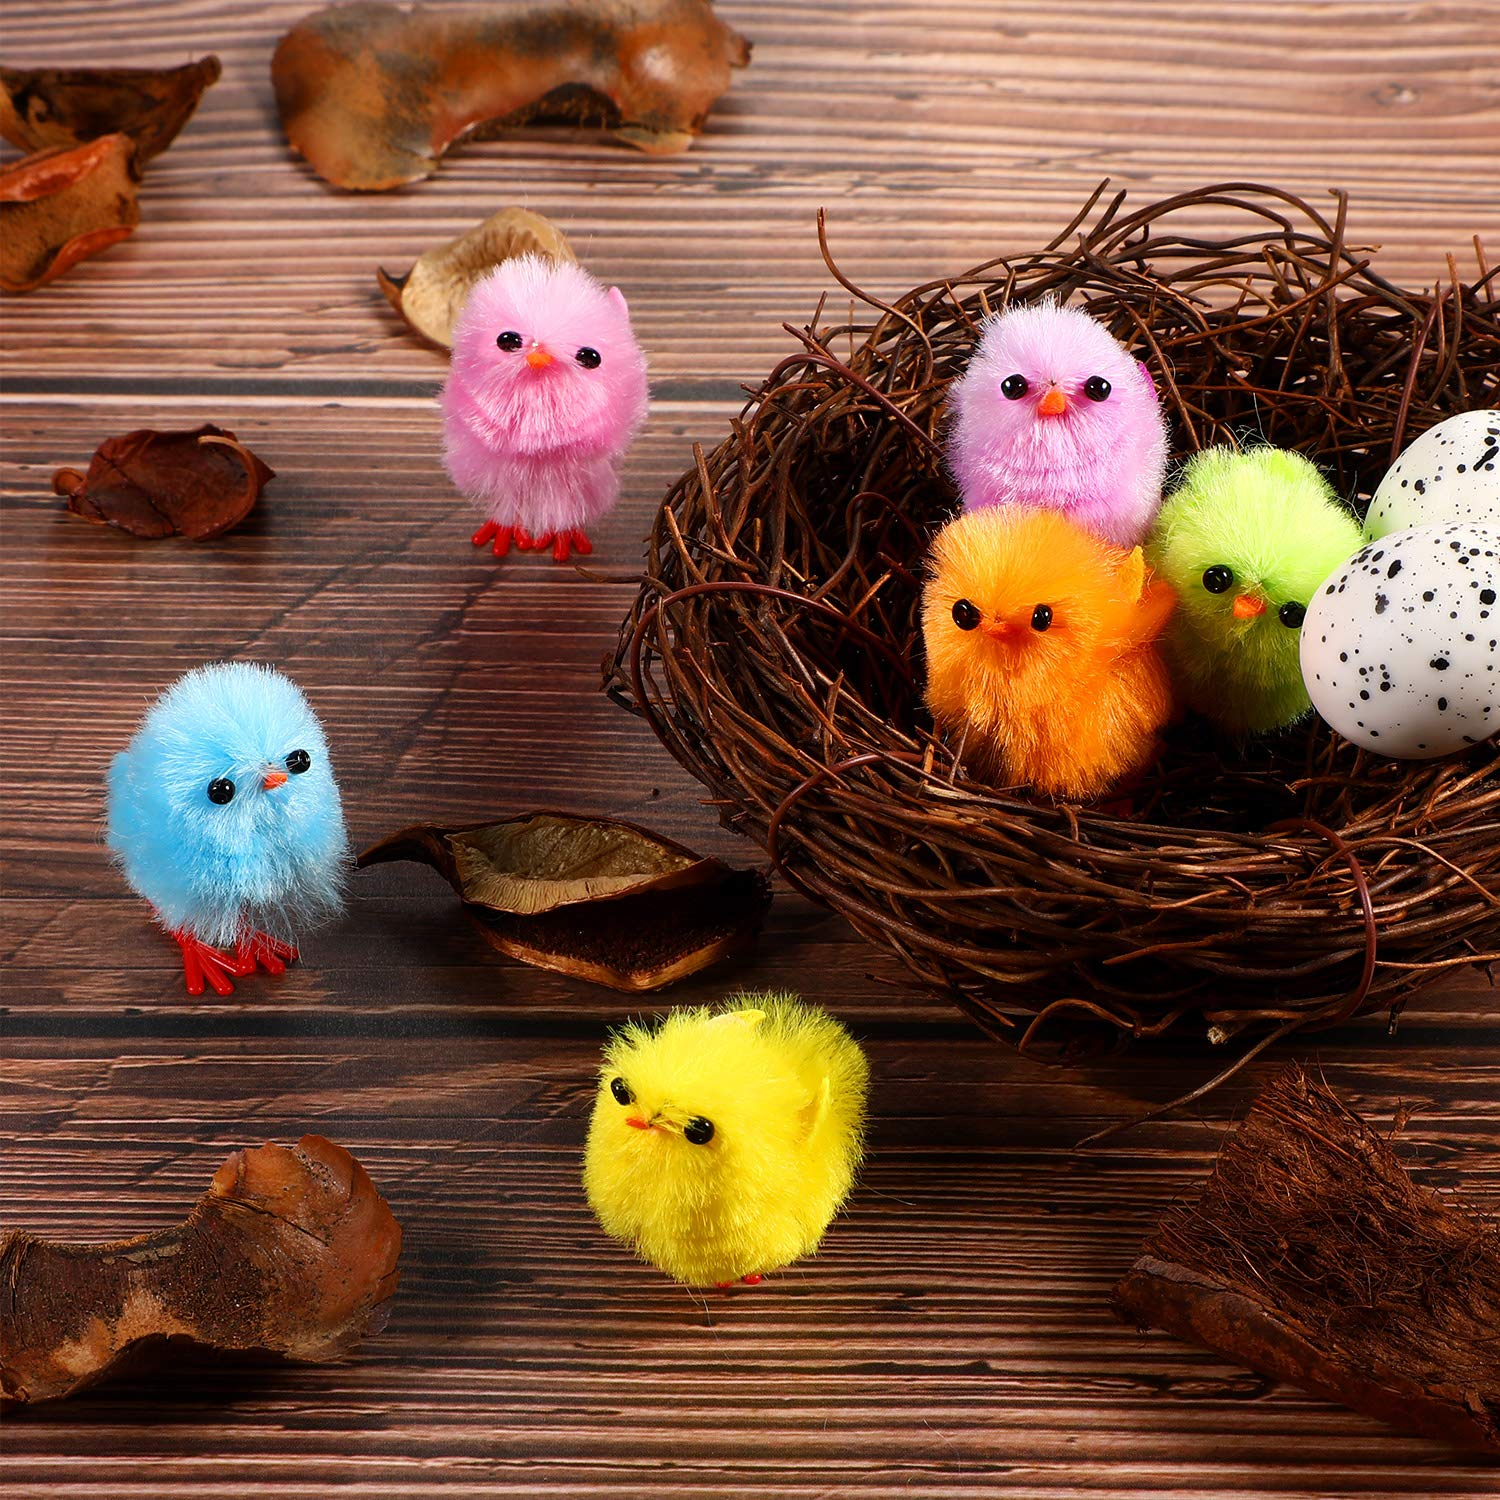 60 Pieces Easter Mini Chicks Multi-colored Artificial Fluffy Chicken Easter Chick for Easter Party Favors Baskets Decor 1.2 inch